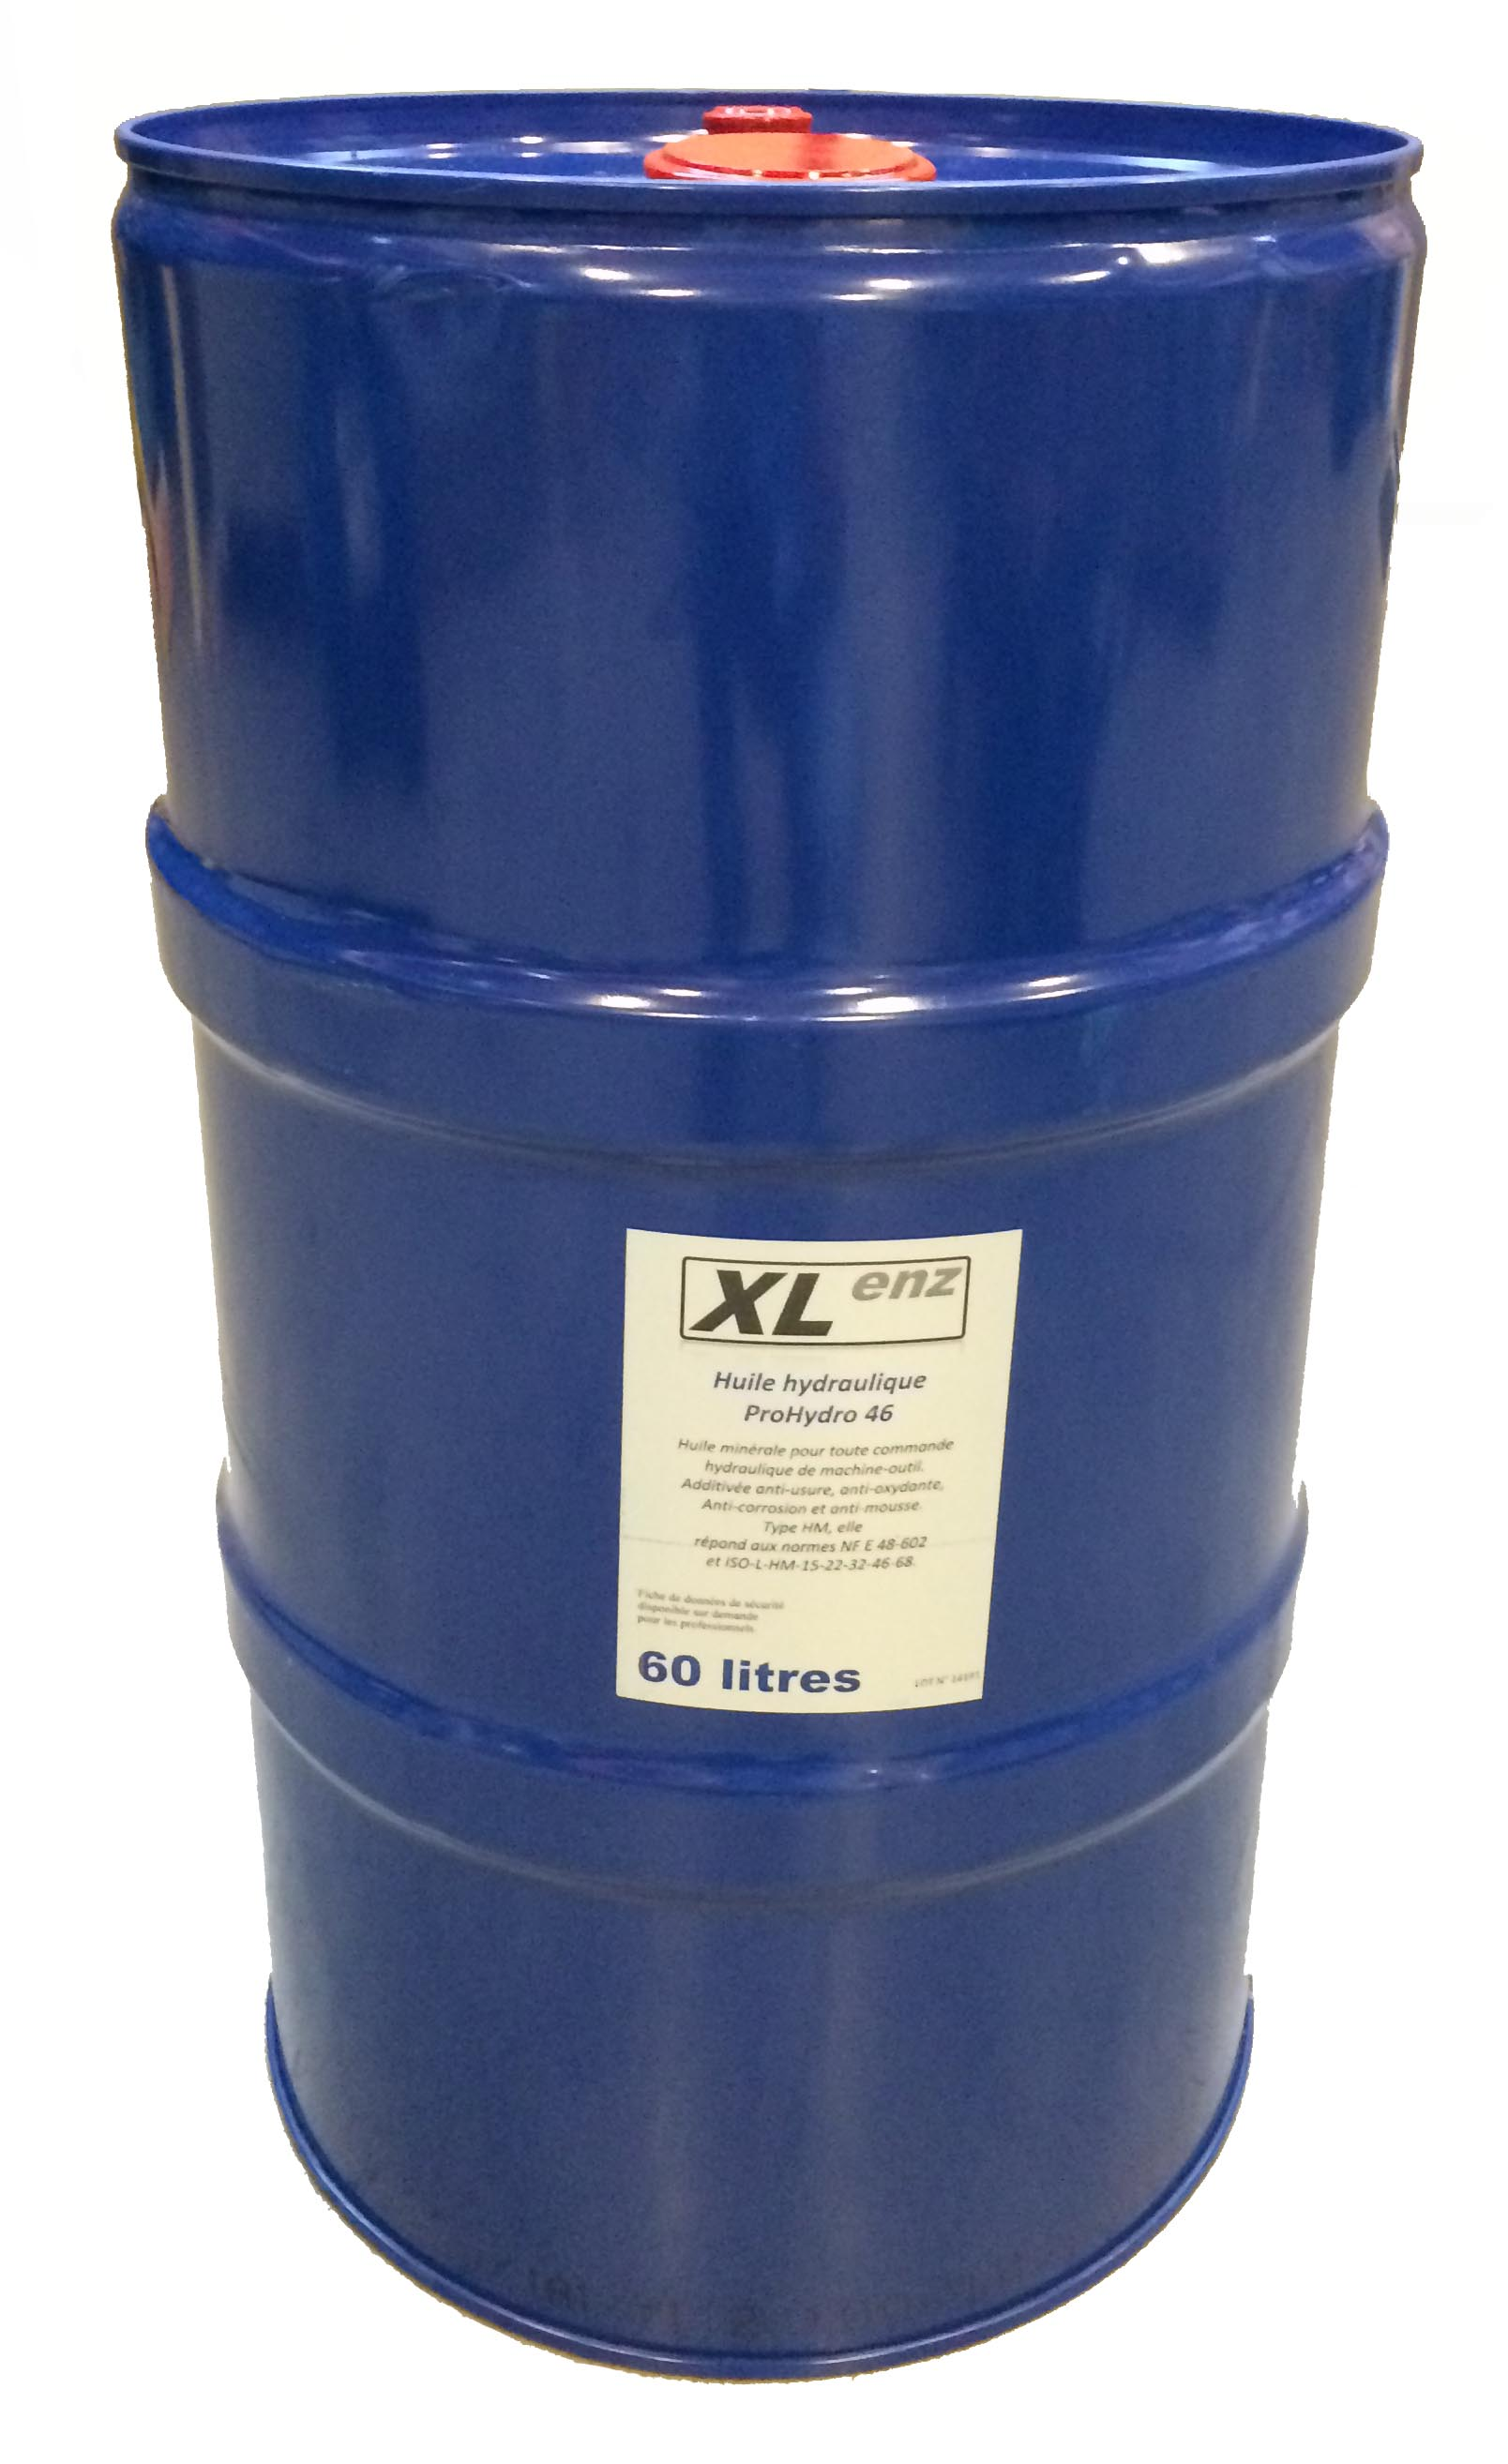 XLenz Huile Hydraulique ProHydro 46 60 litres